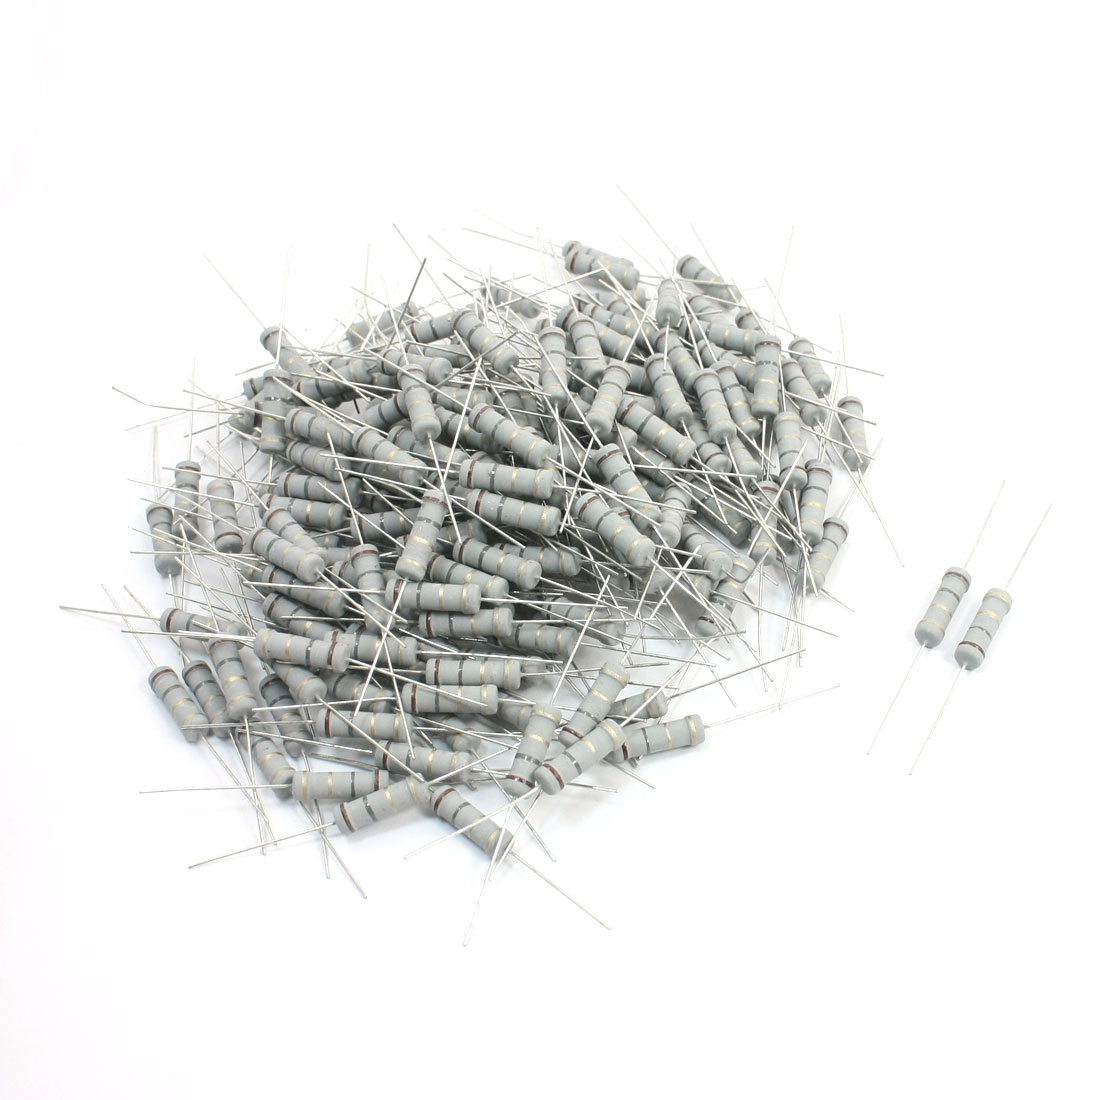 200Pcs 2 Watt 1.8 Ohm 5% Tolerance Colored Ring Resistance Metal Oxide Film Resistor Axial Lead